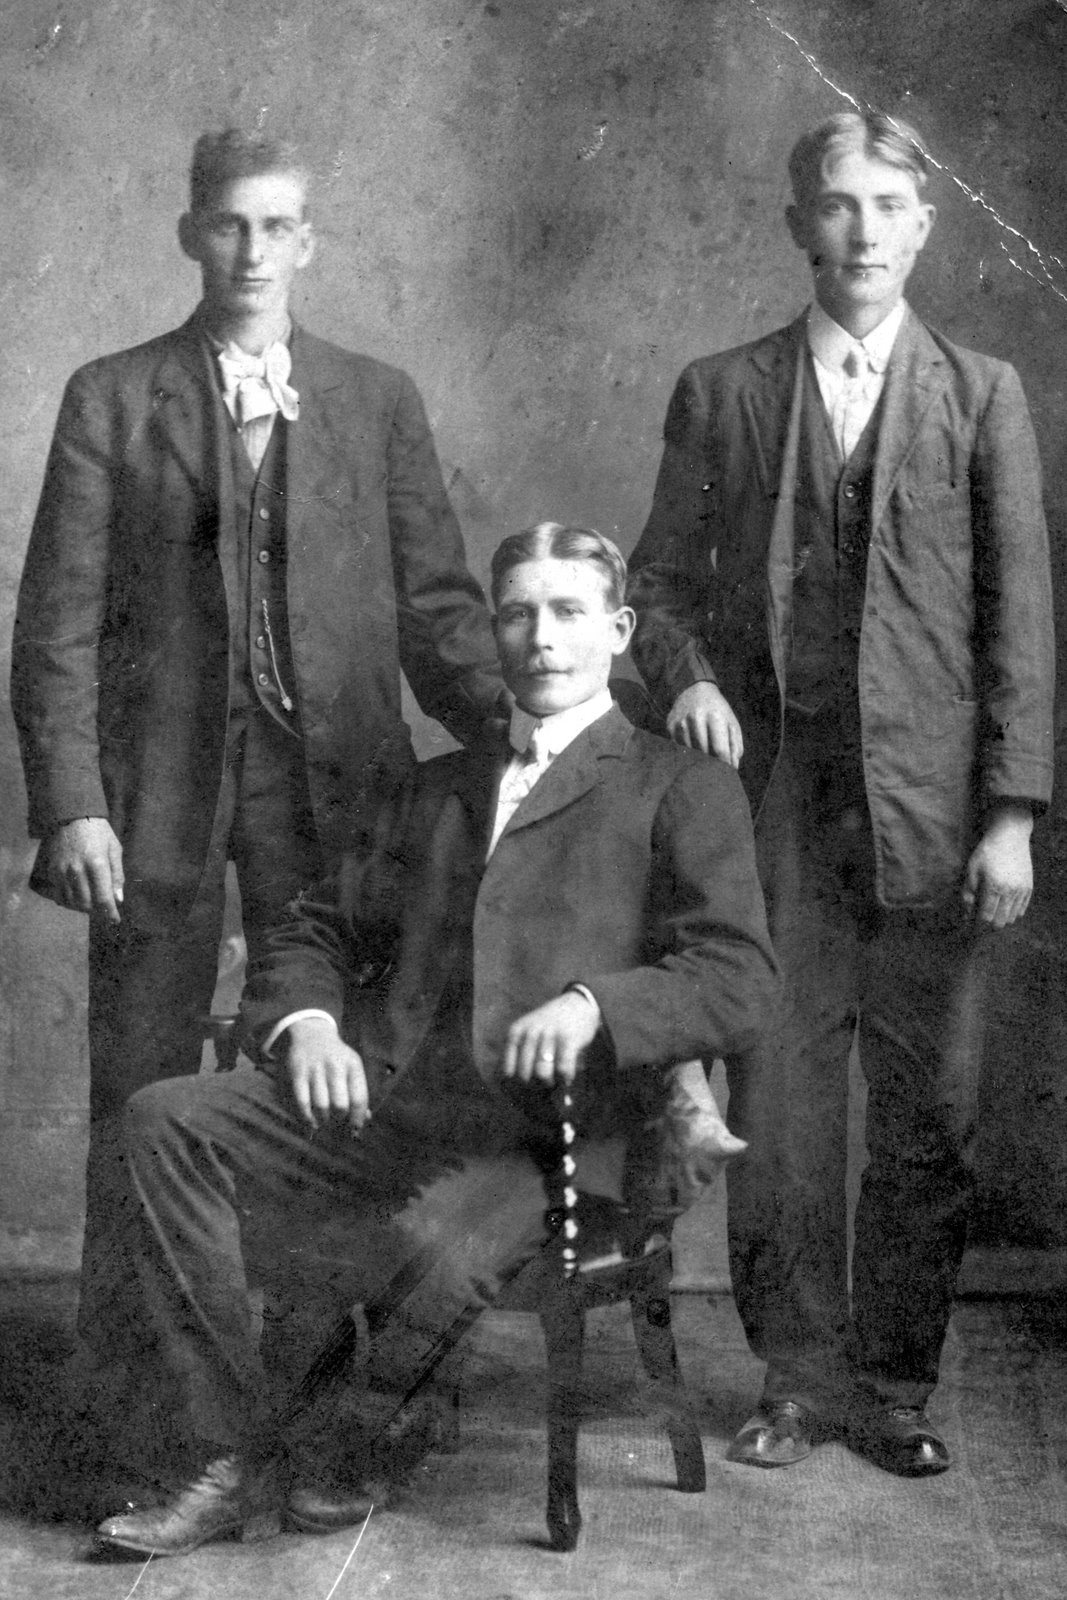 Picture of three men, two standing and one seated in the middle.